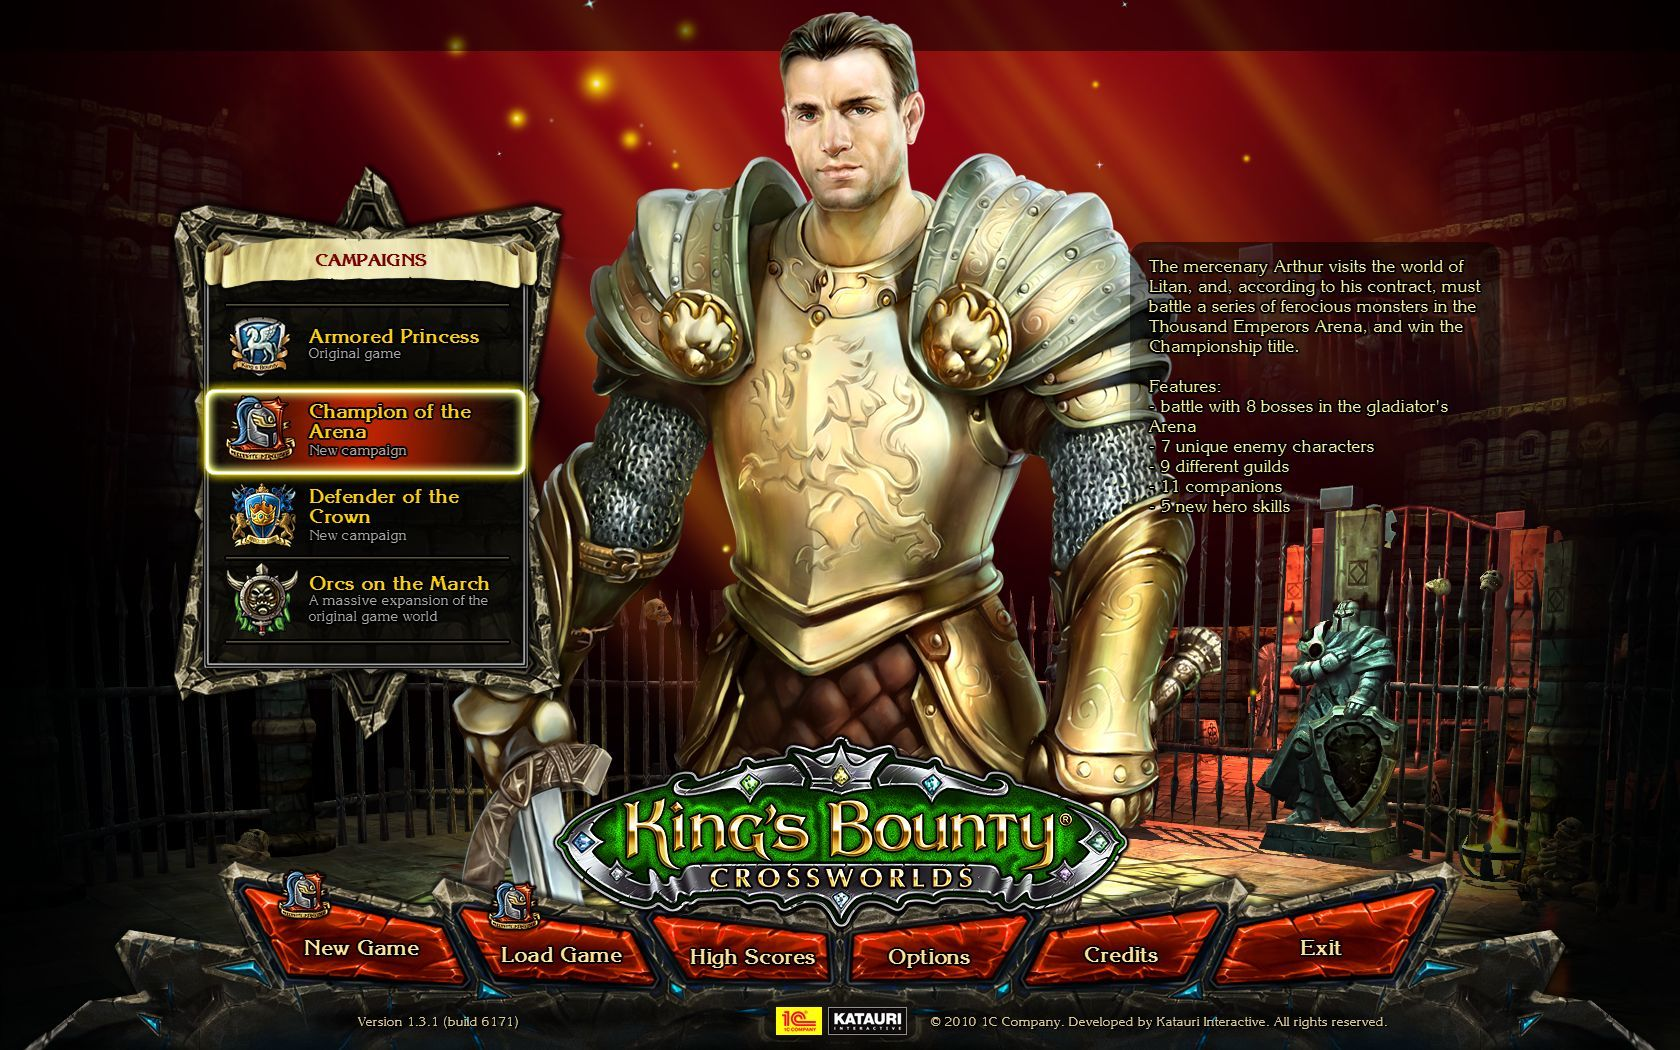 King's Bounty: Crossworlds Windows The extension Champion of the Arena, a new map.